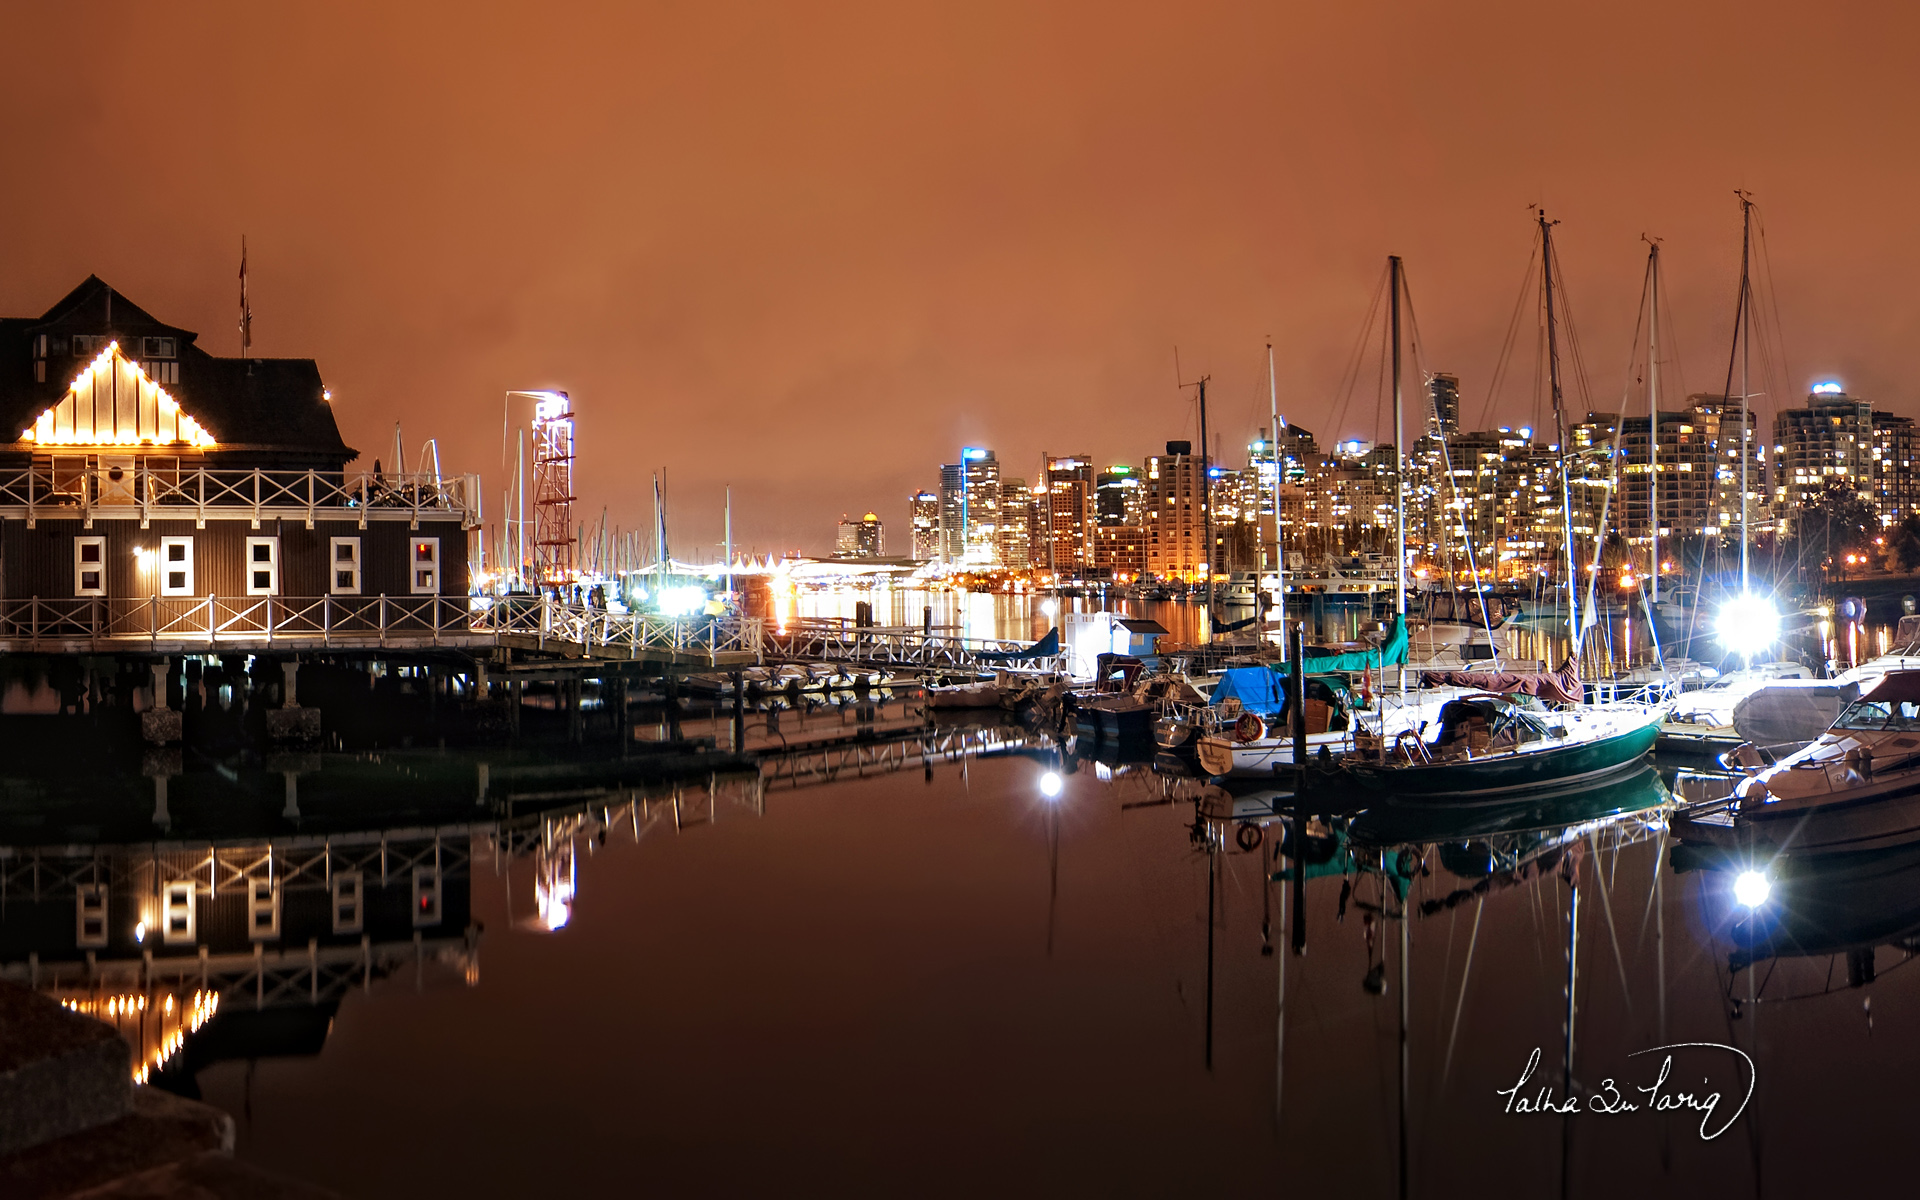 Vancouver Coal Harbour Nights 1105.79 Kb